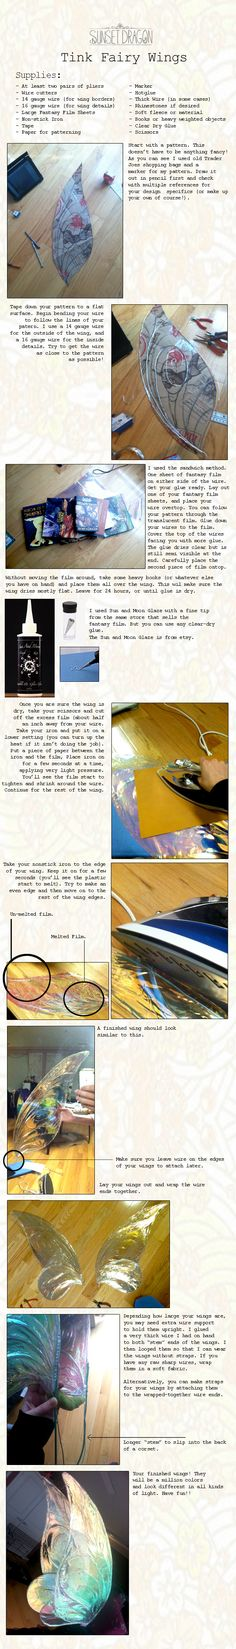 Fantasy Film Wing Tutorial by ~Flying-Fox on deviantART